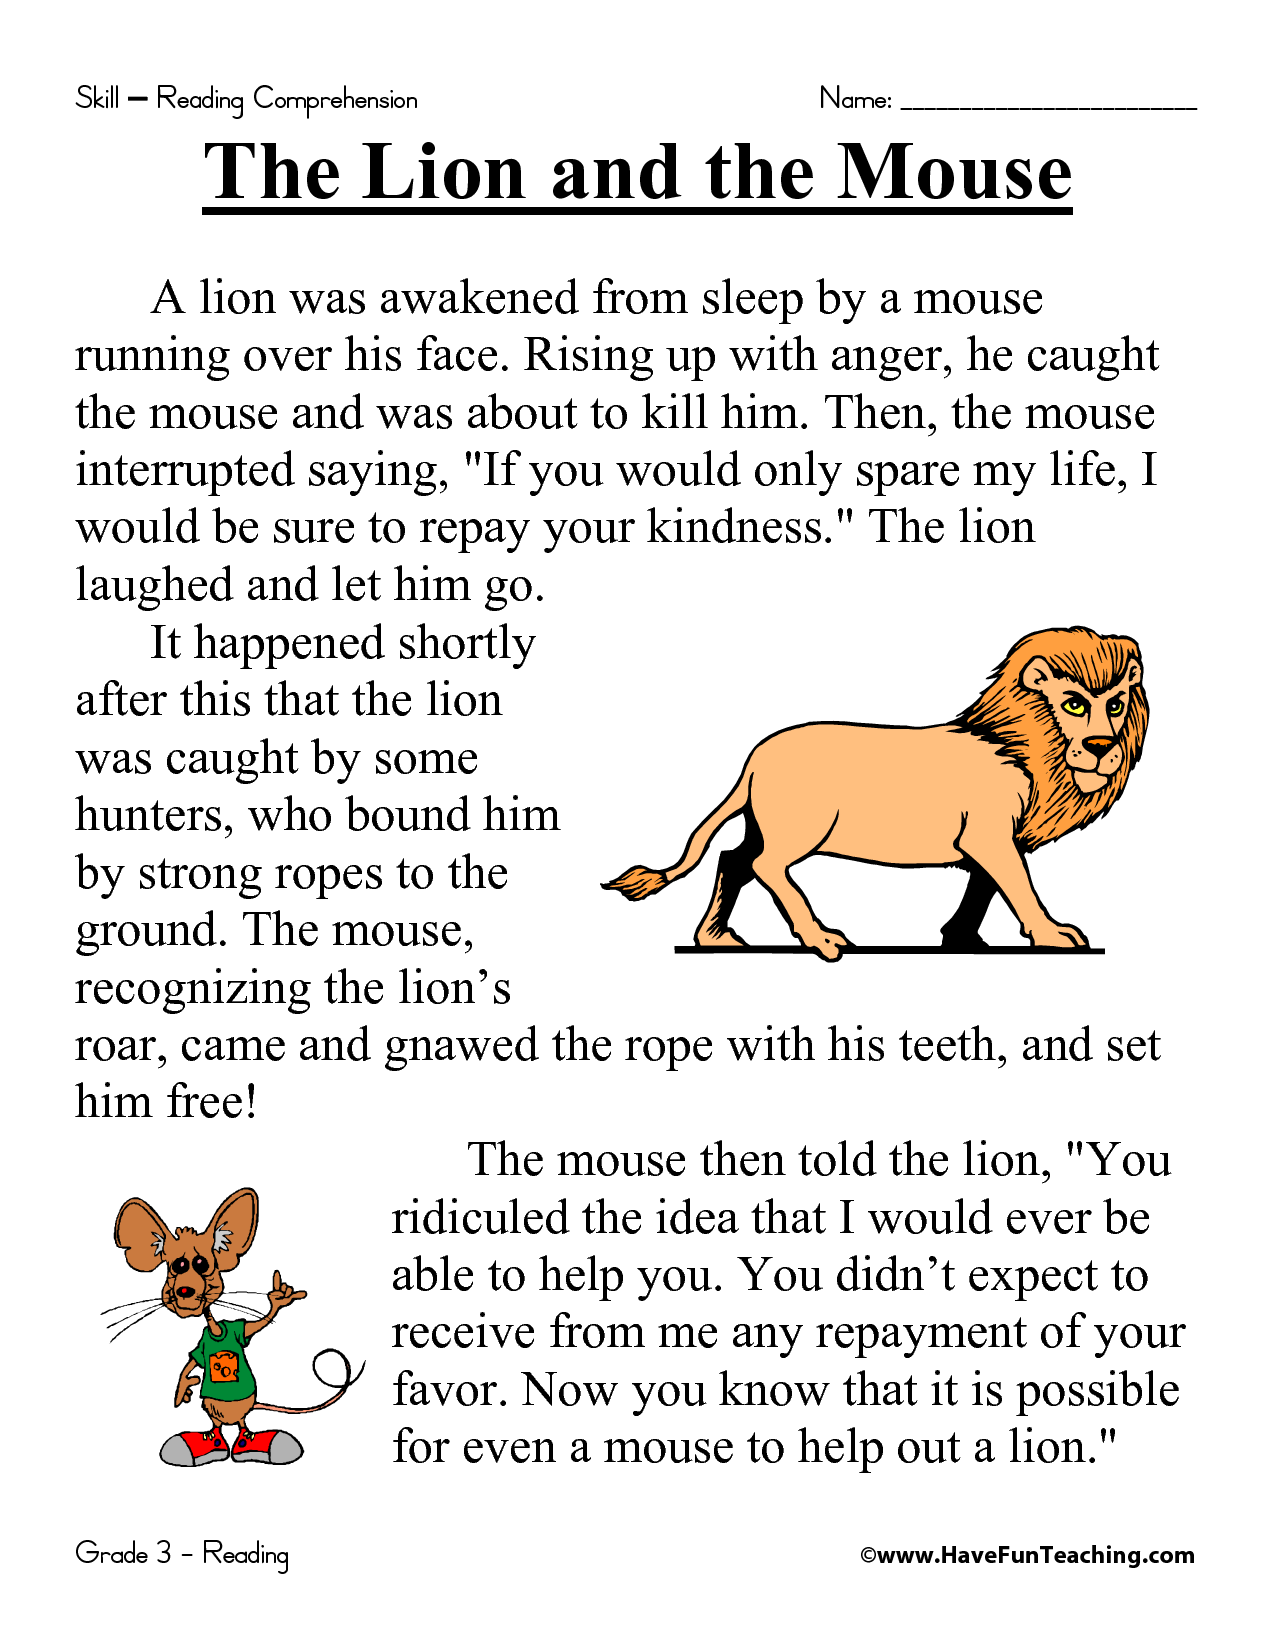 image about The Lion and the Mouse Story Printable titled The Lion an the mouse Notify me a tale! 3rd quality